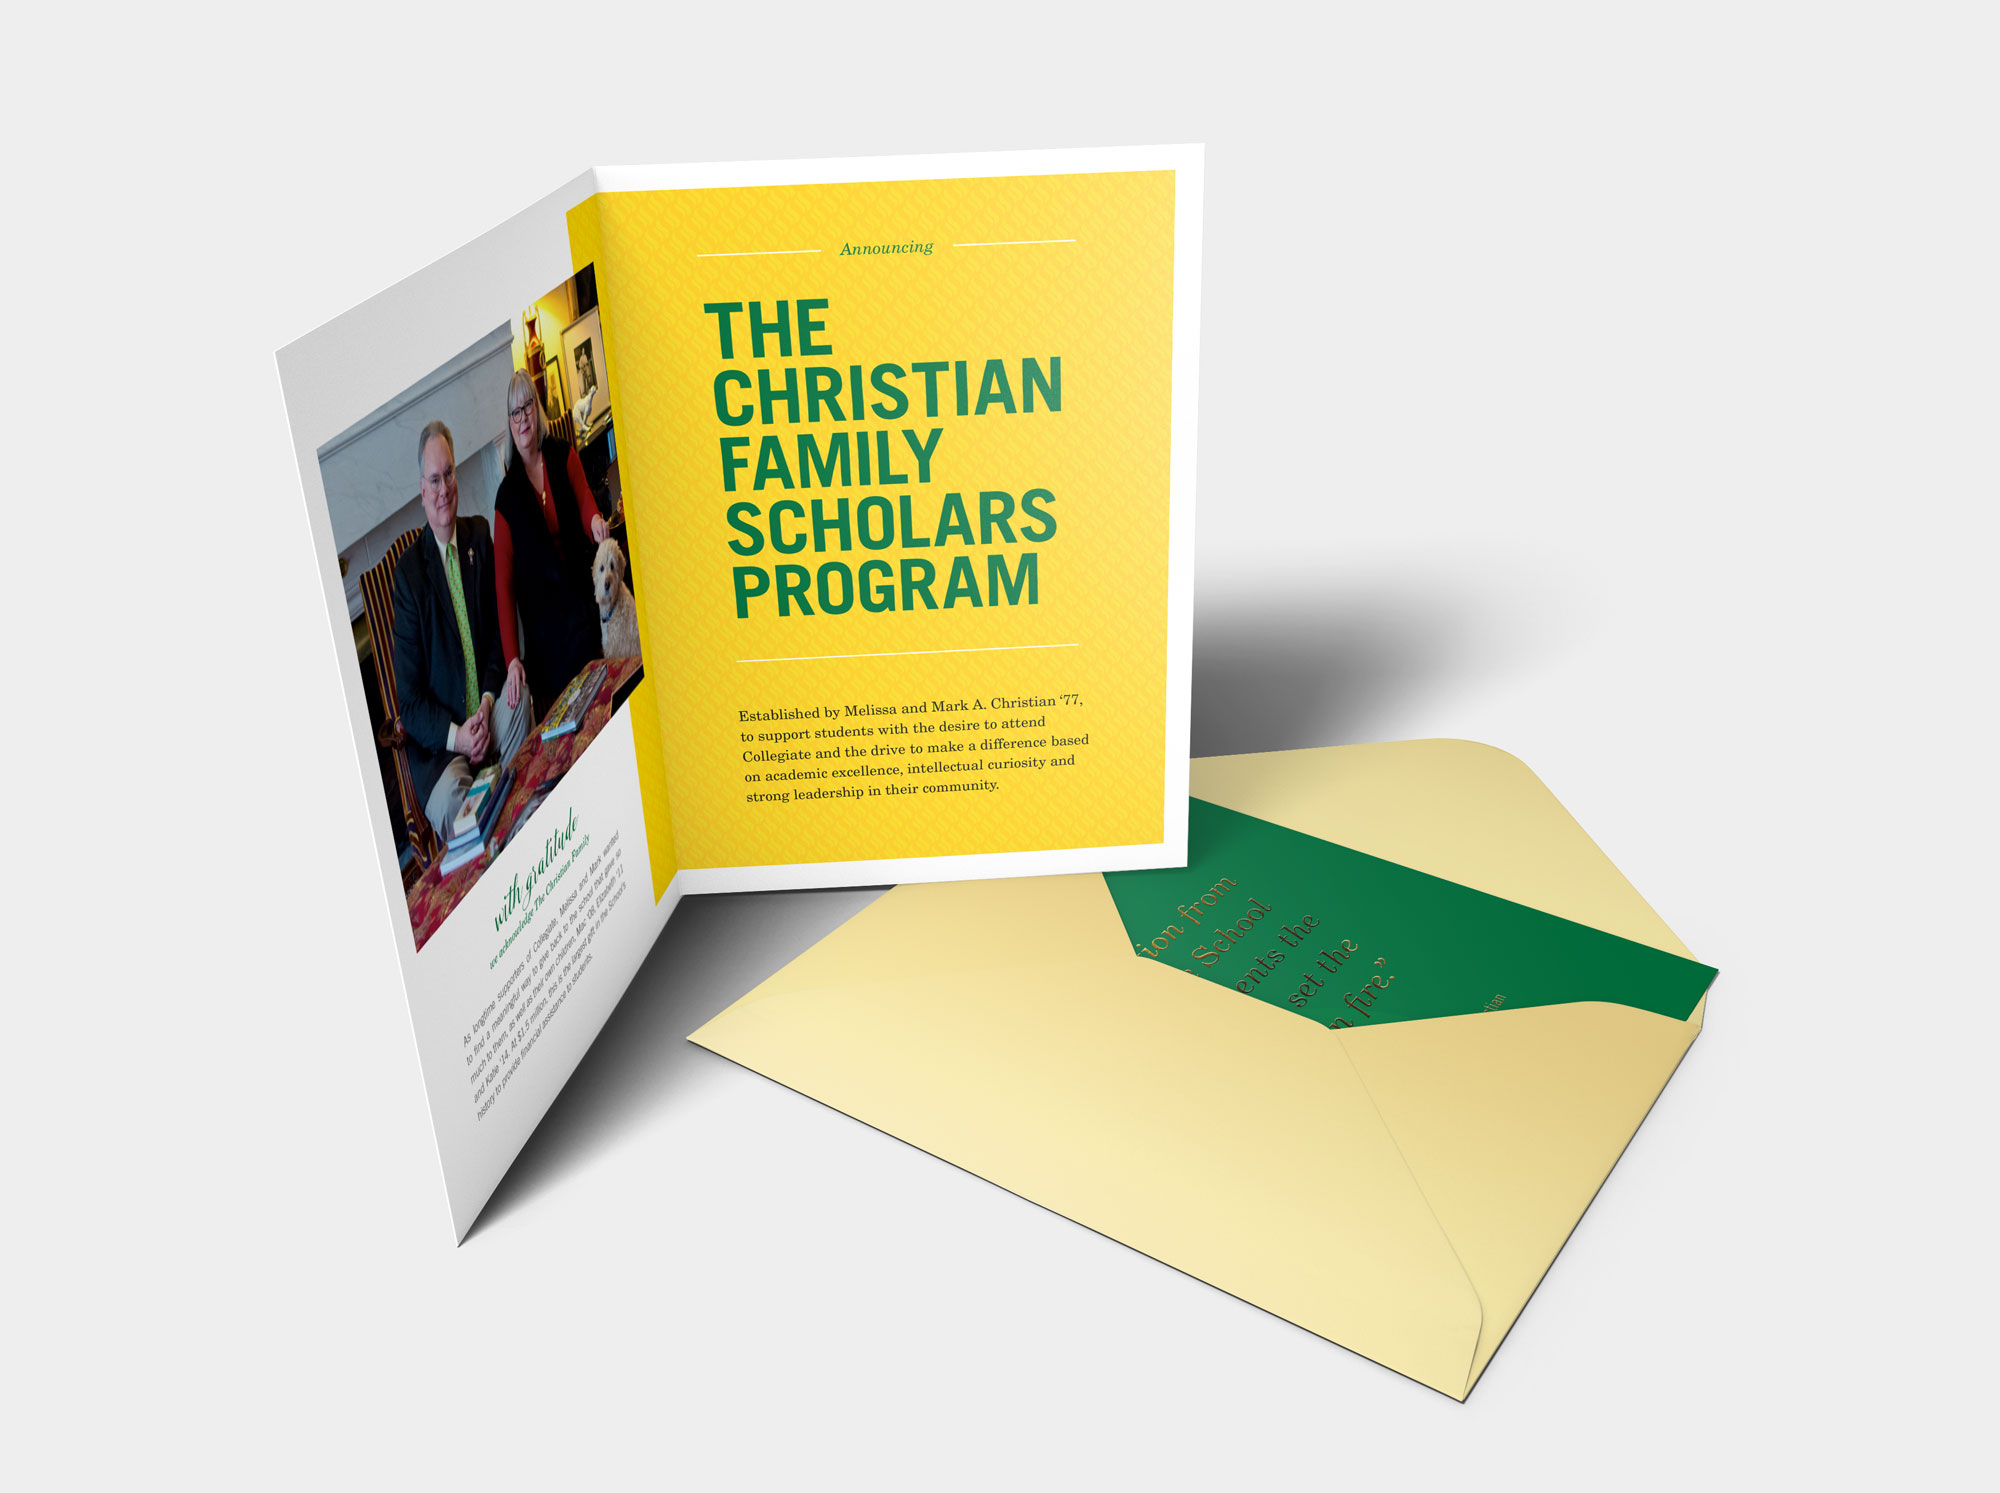 Scholars program announcement